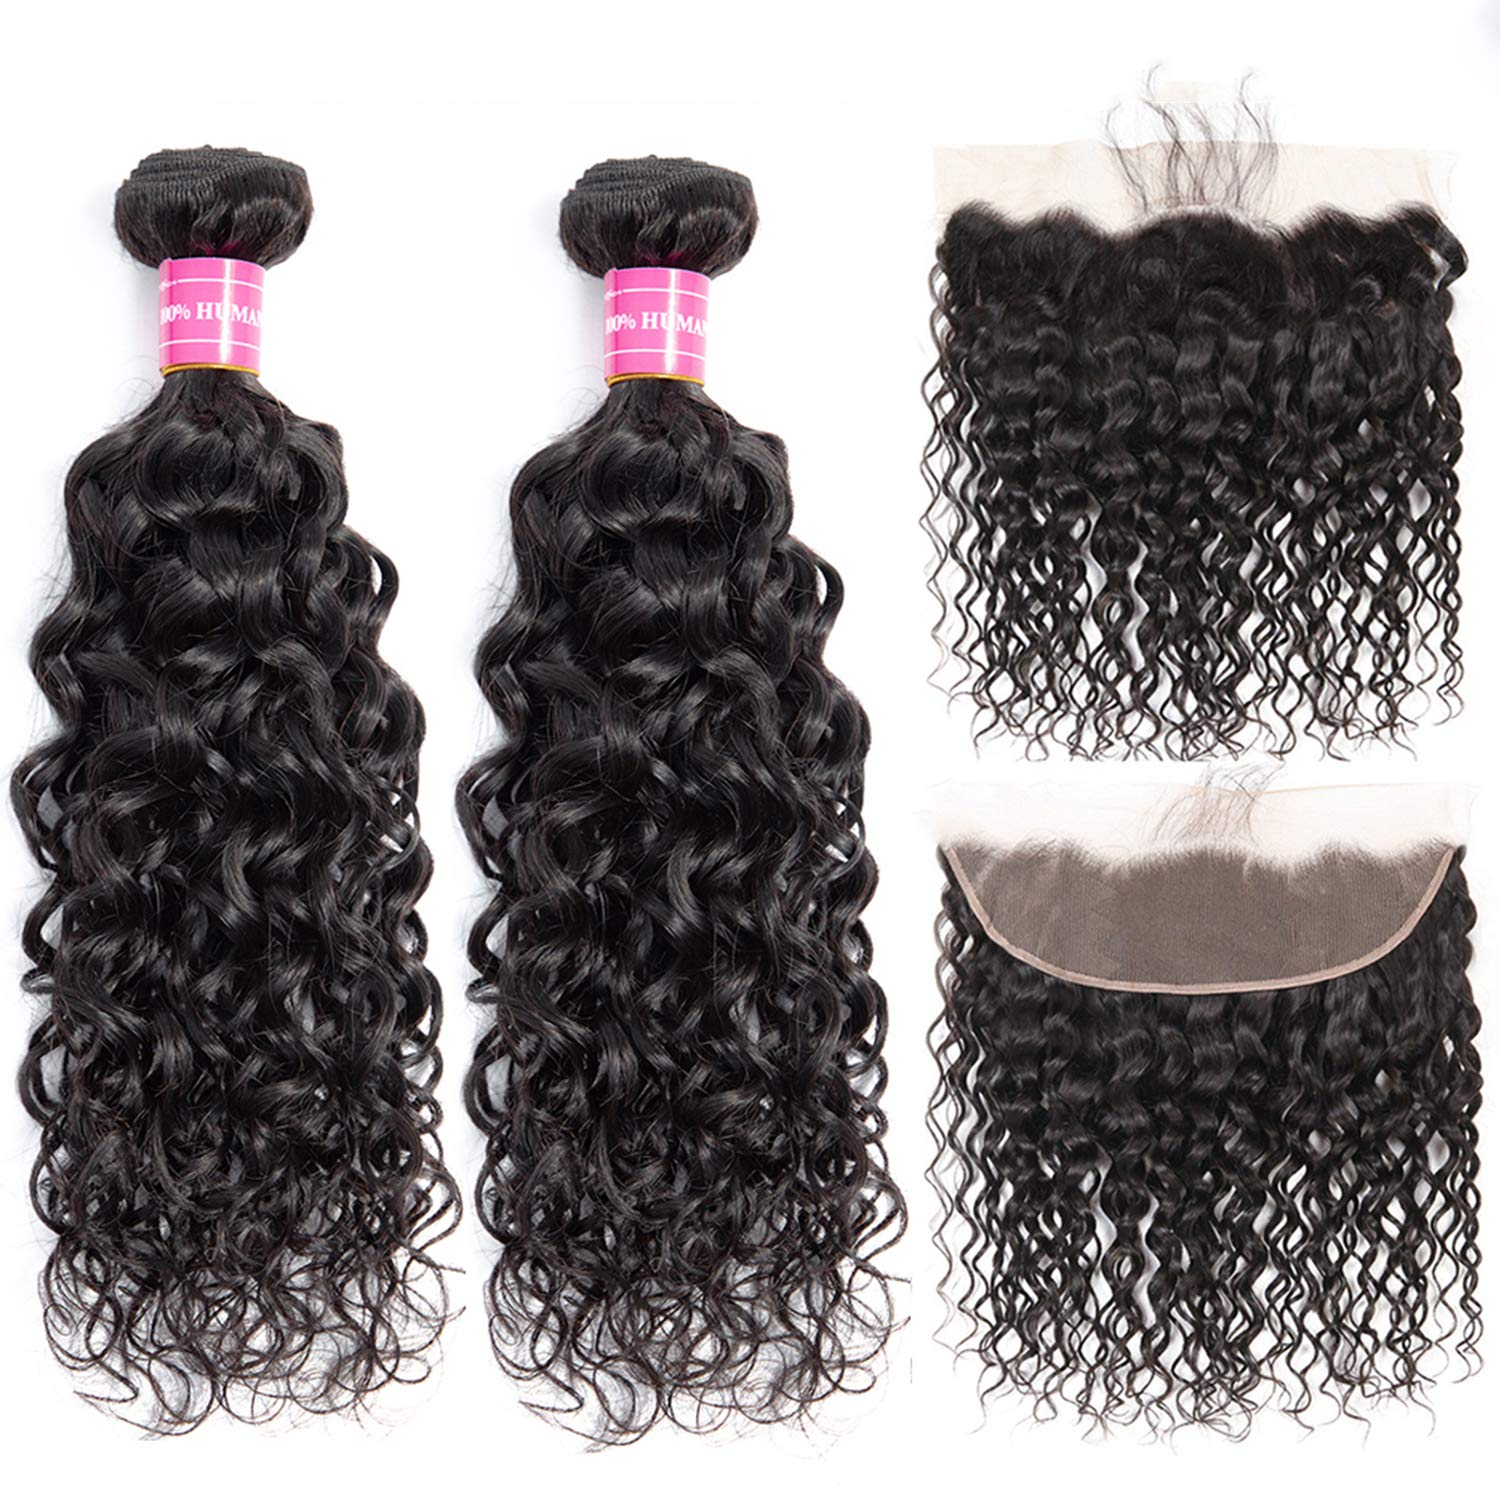 Brazilian Water Wave Bundles with Frontal 100% Virgin Human Hair Wet and Wavy 2 Bundles With Frontal Lace Closure Unprocessed 10A Hair Bundles with 13×4 Ear to Ear Frontal Natural Color(10 12+10) by PandaOne